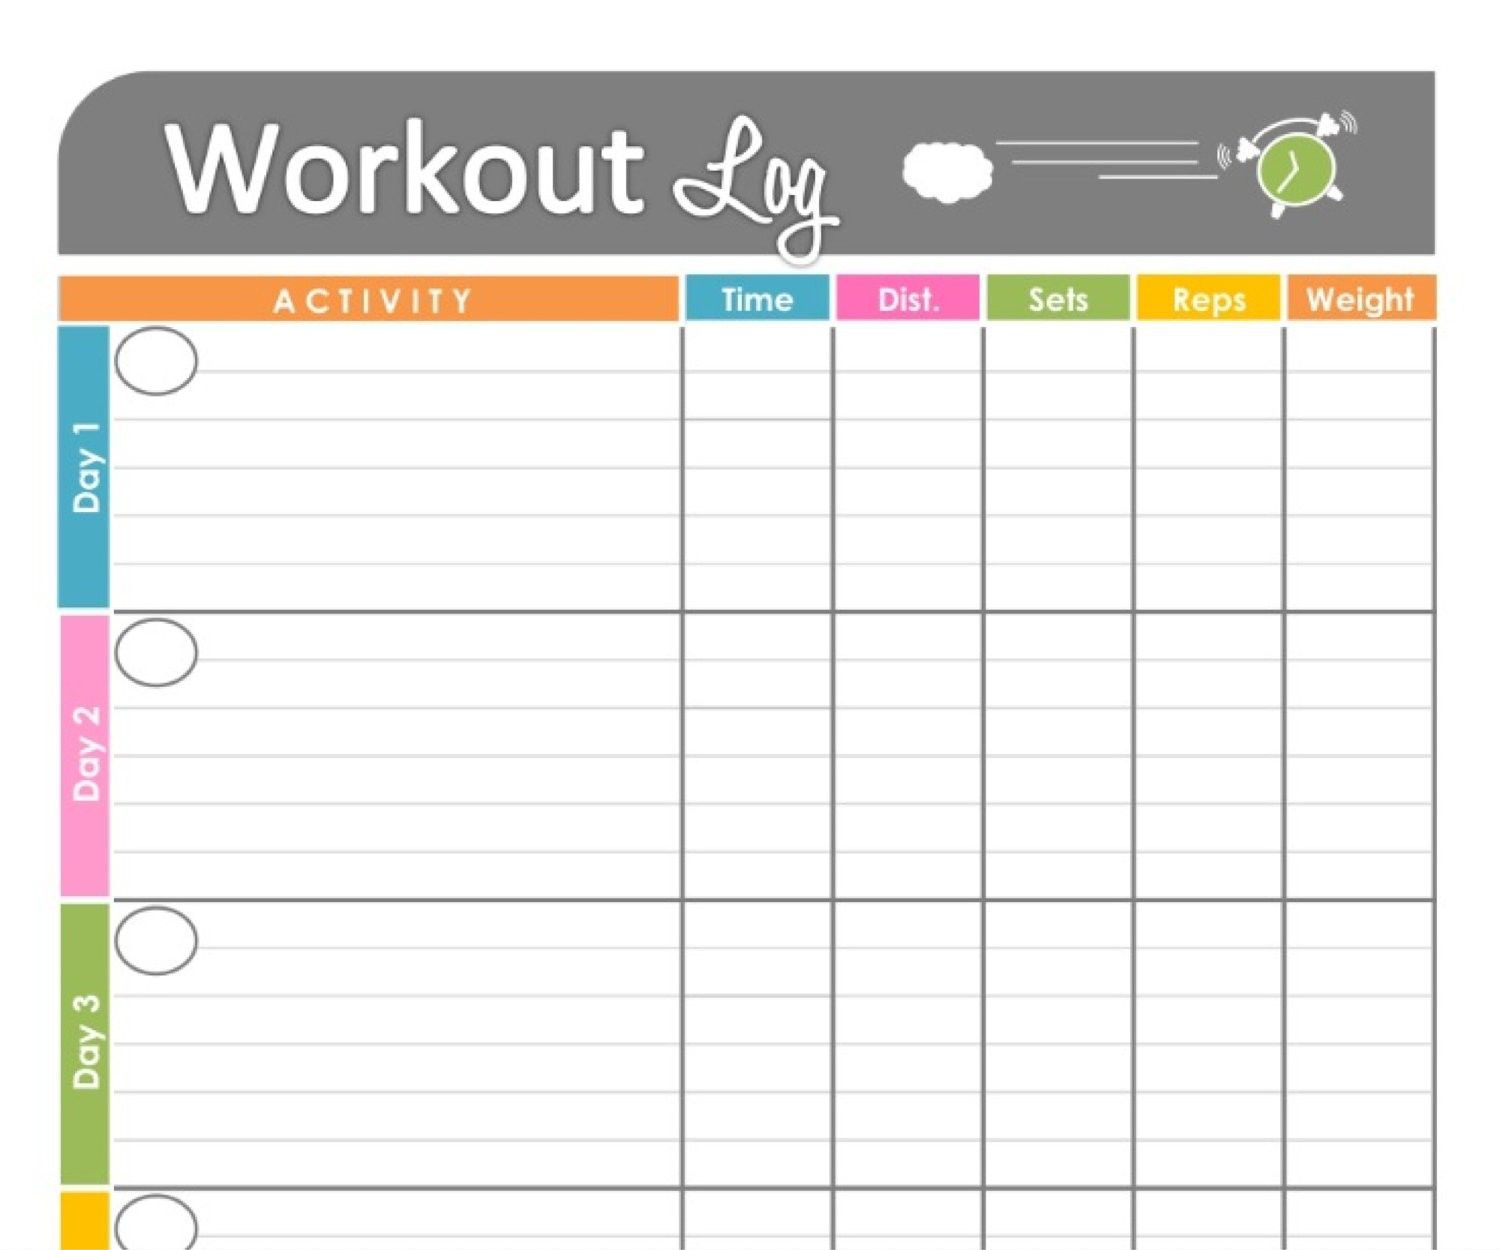 002 Marvelou Weekly Workout Schedule Template Highest Quality  12 Week Plan Training CalendarFull